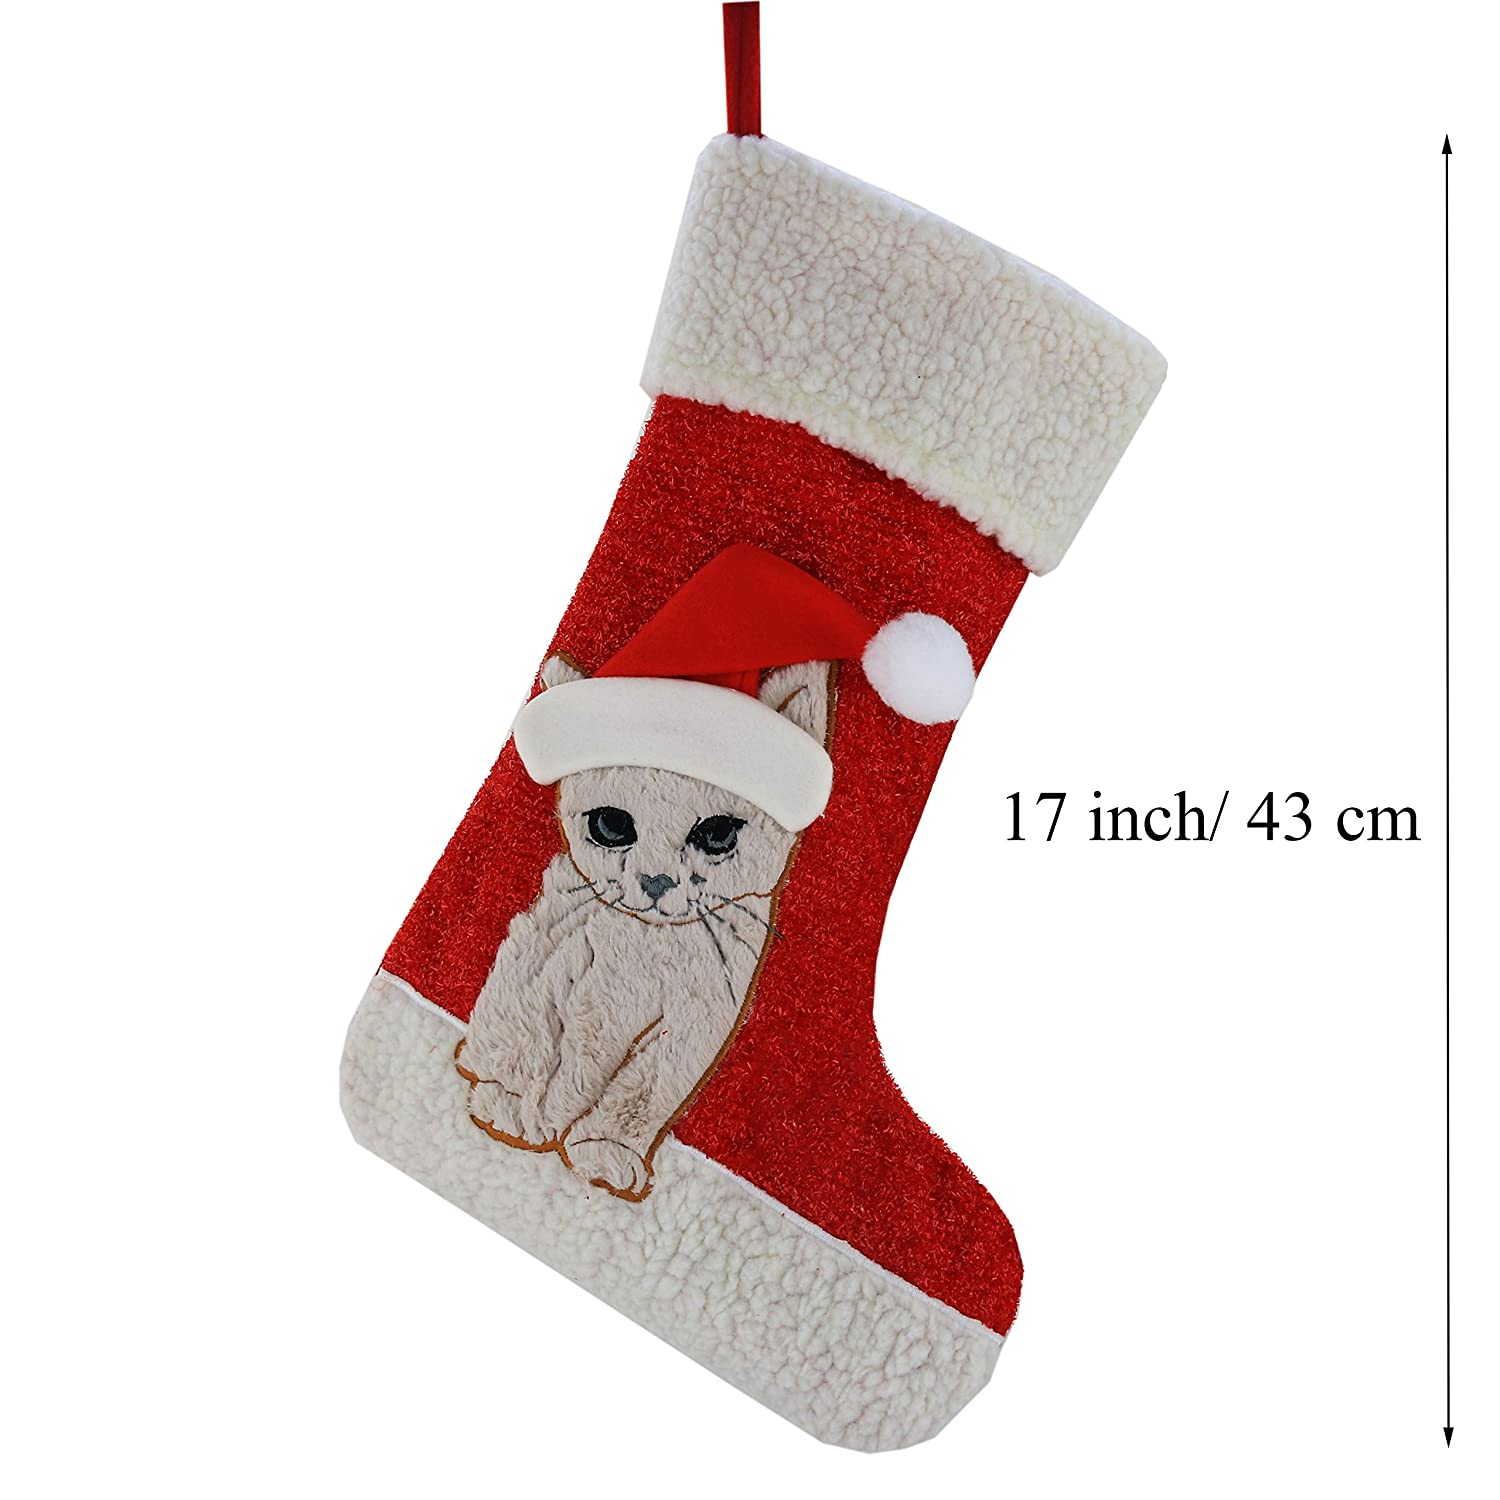 Amazon.com: Wewill Christmas Holiday Pet Theme Embroidered Stockings ...